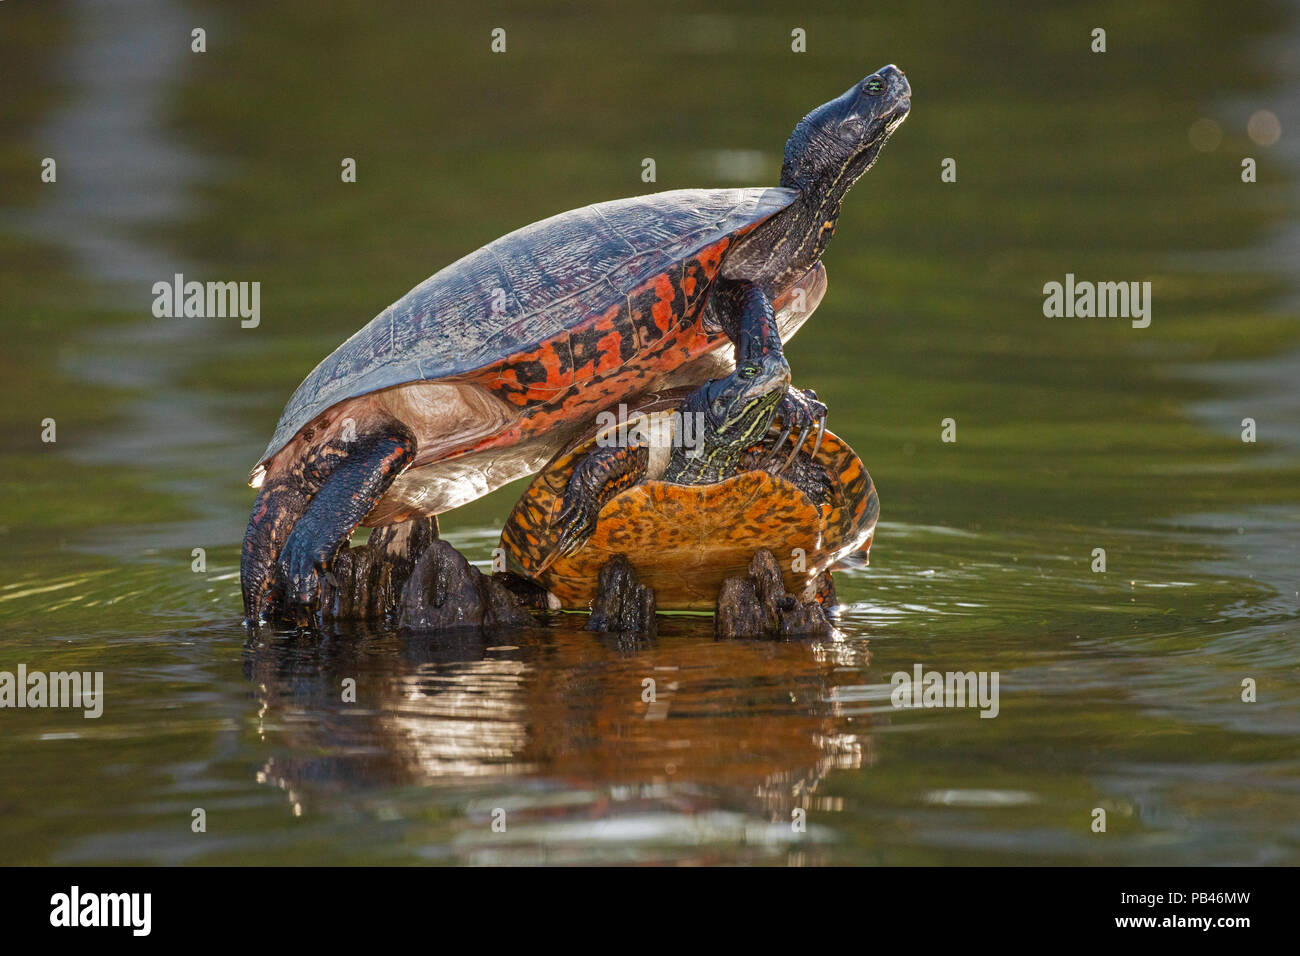 northern red-bellied turtle or redbellied cooter, (Pseudemys rubriventris), Maryland, IUCN near threatened species - Stock Image